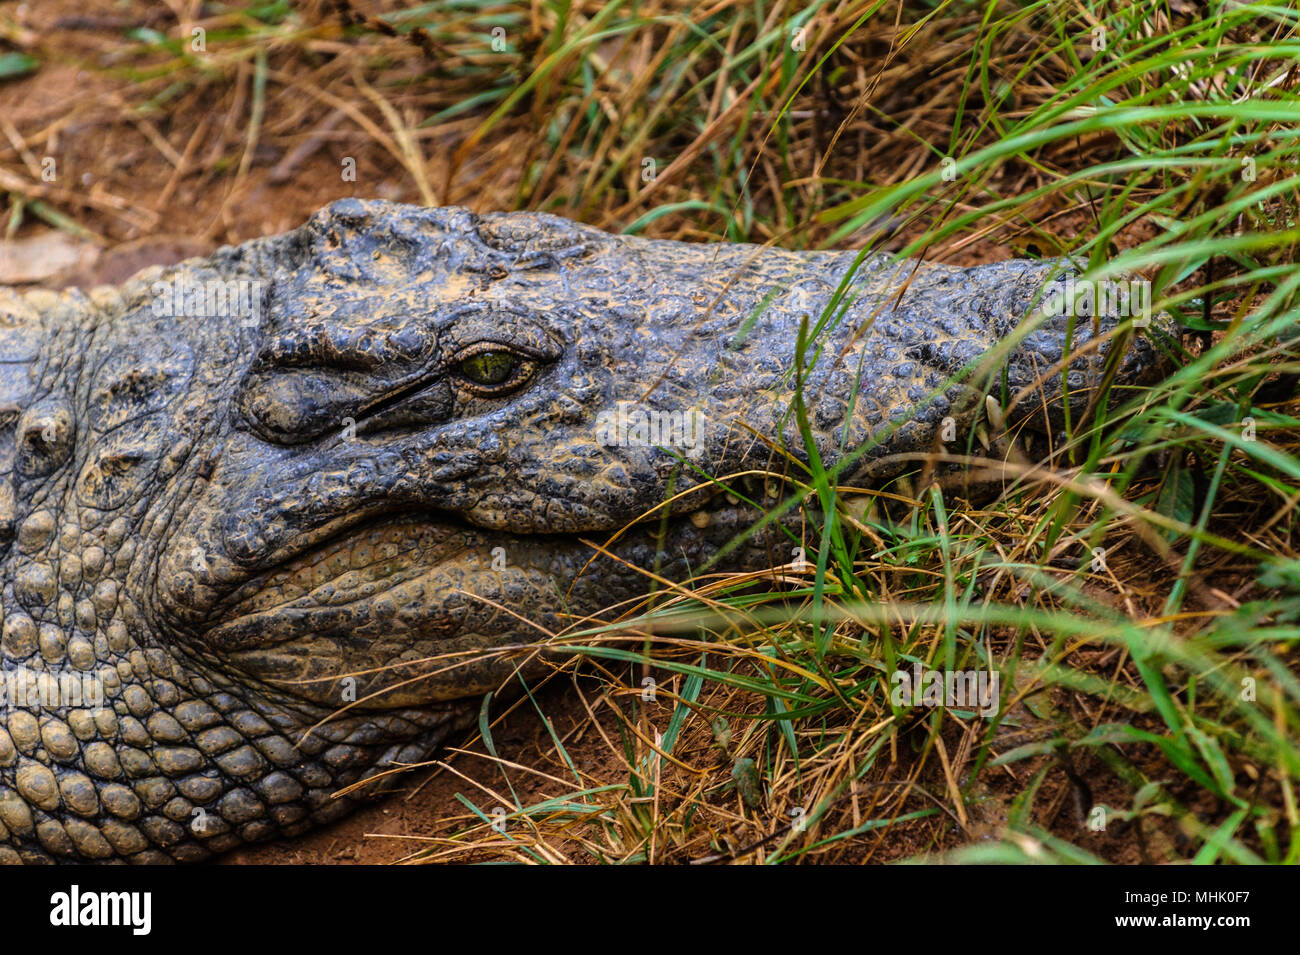 Nile crocodile (Crocodylus niloticus), an African crocodile and the second largest extant reptile in the world, after the saltwater crocodile. - Stock Image